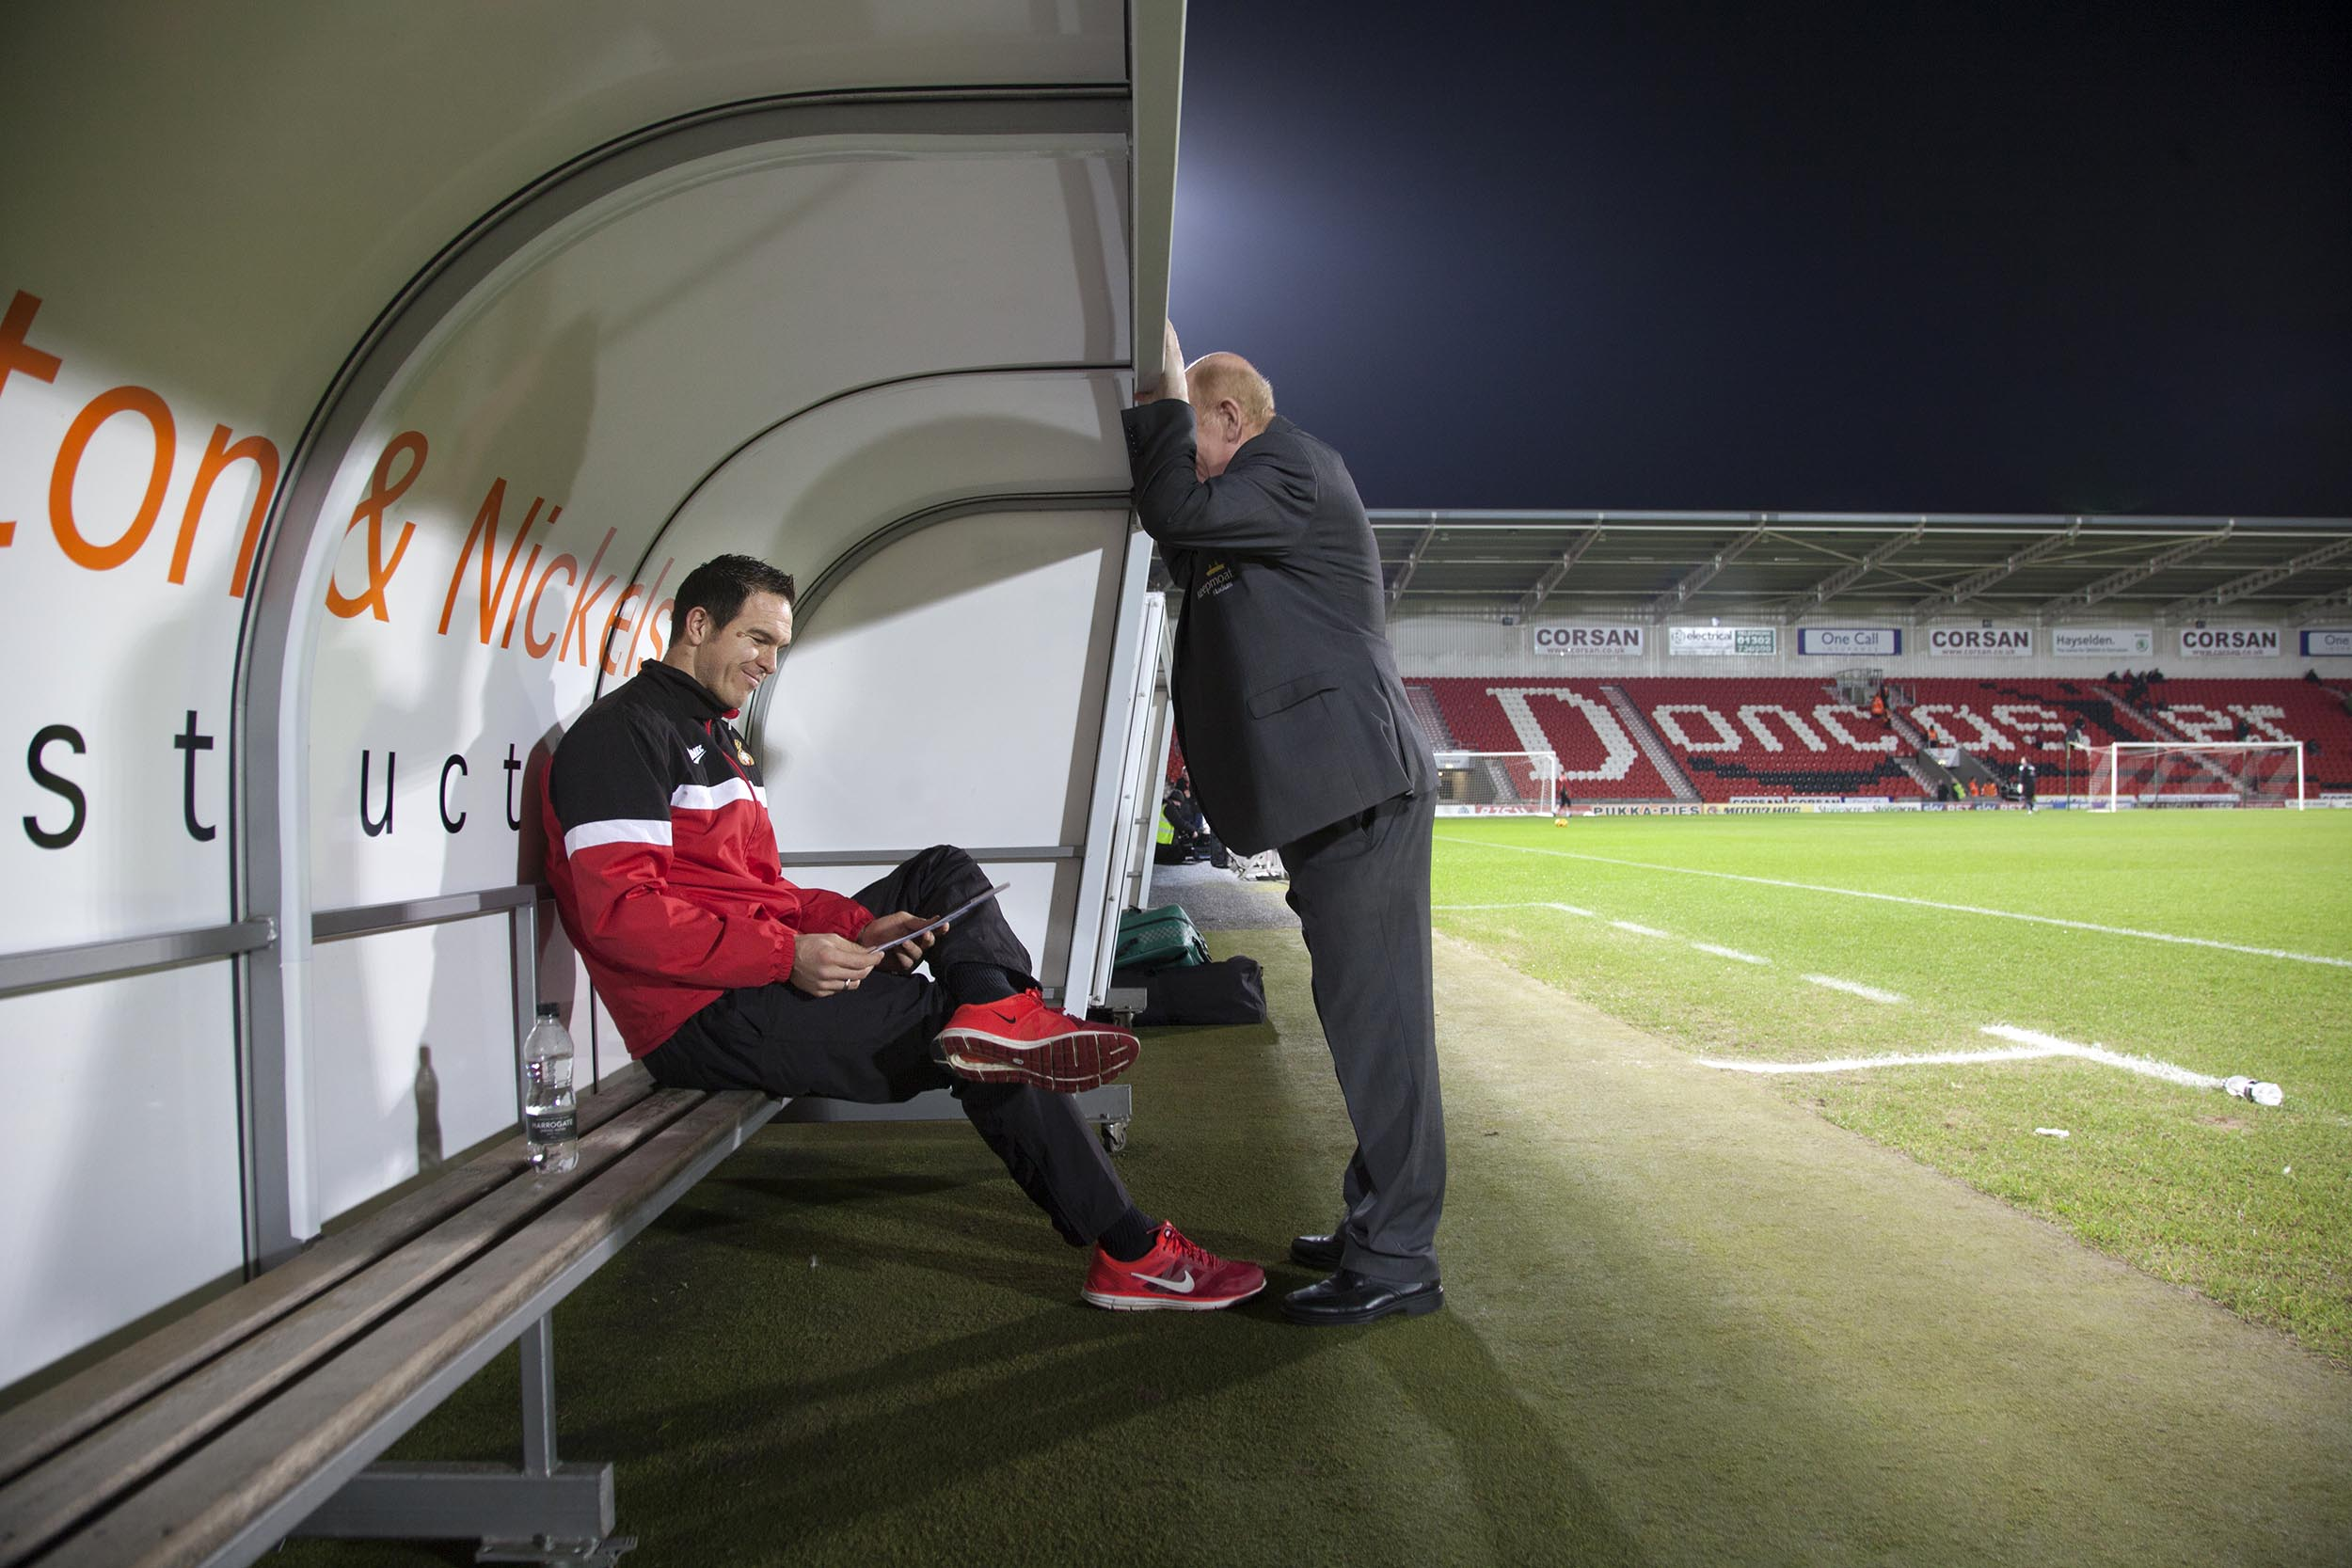 A documentary photograph of Thorsten Stuckmann at Doncaster Rovers' Keepmoat Stadium.  I was commissioned as documentary photographer by German football magazine 11 Freunde.